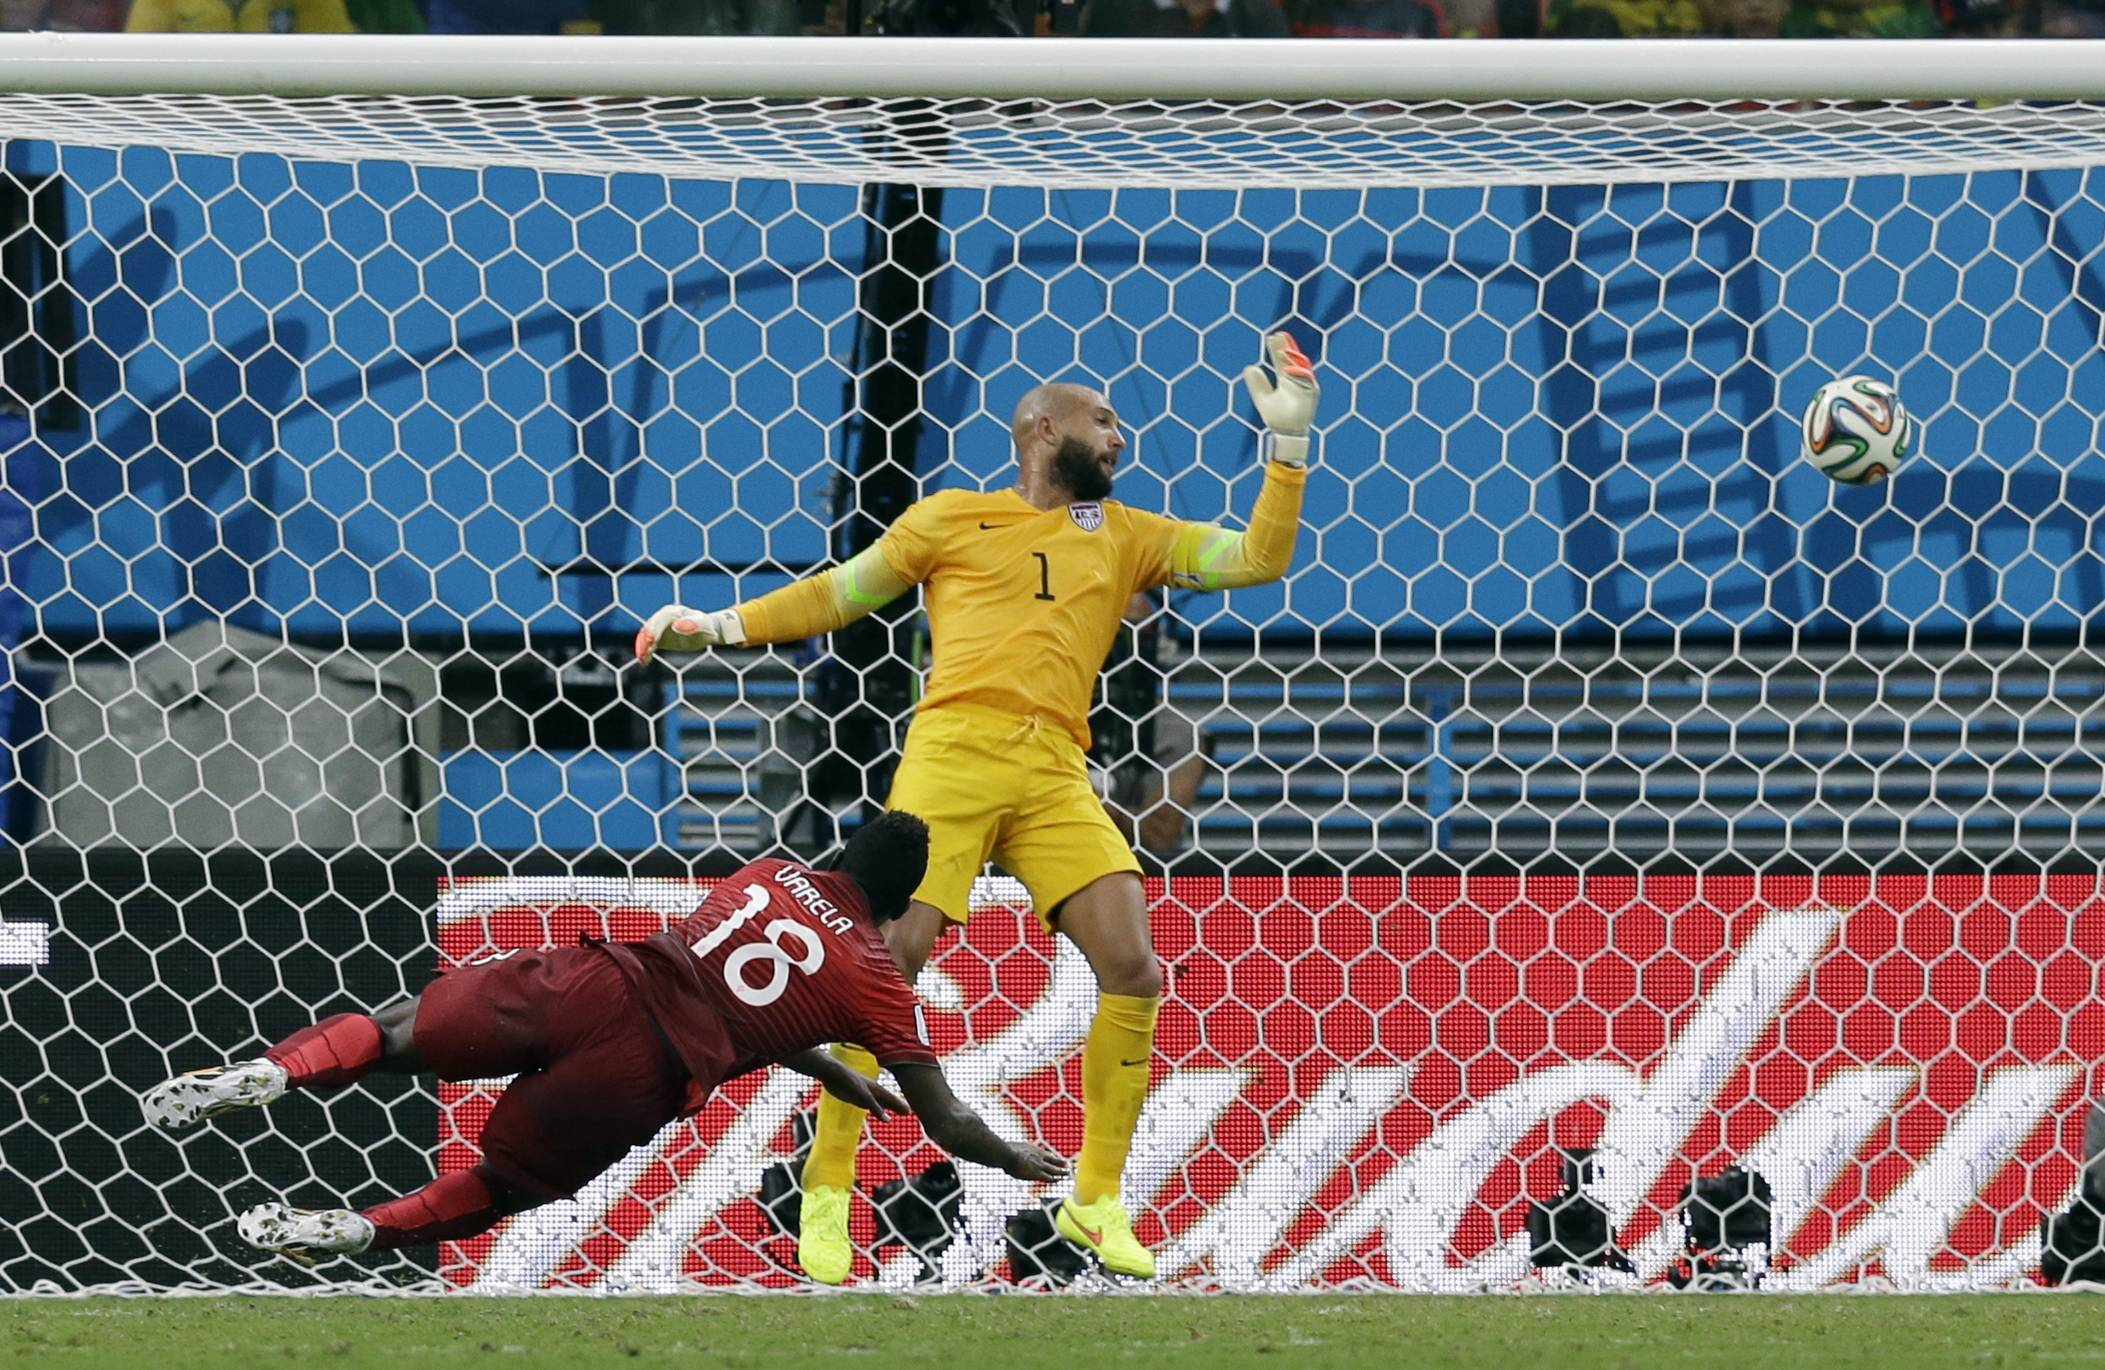 Late goal like a kick in the gut for U.S. soccer team